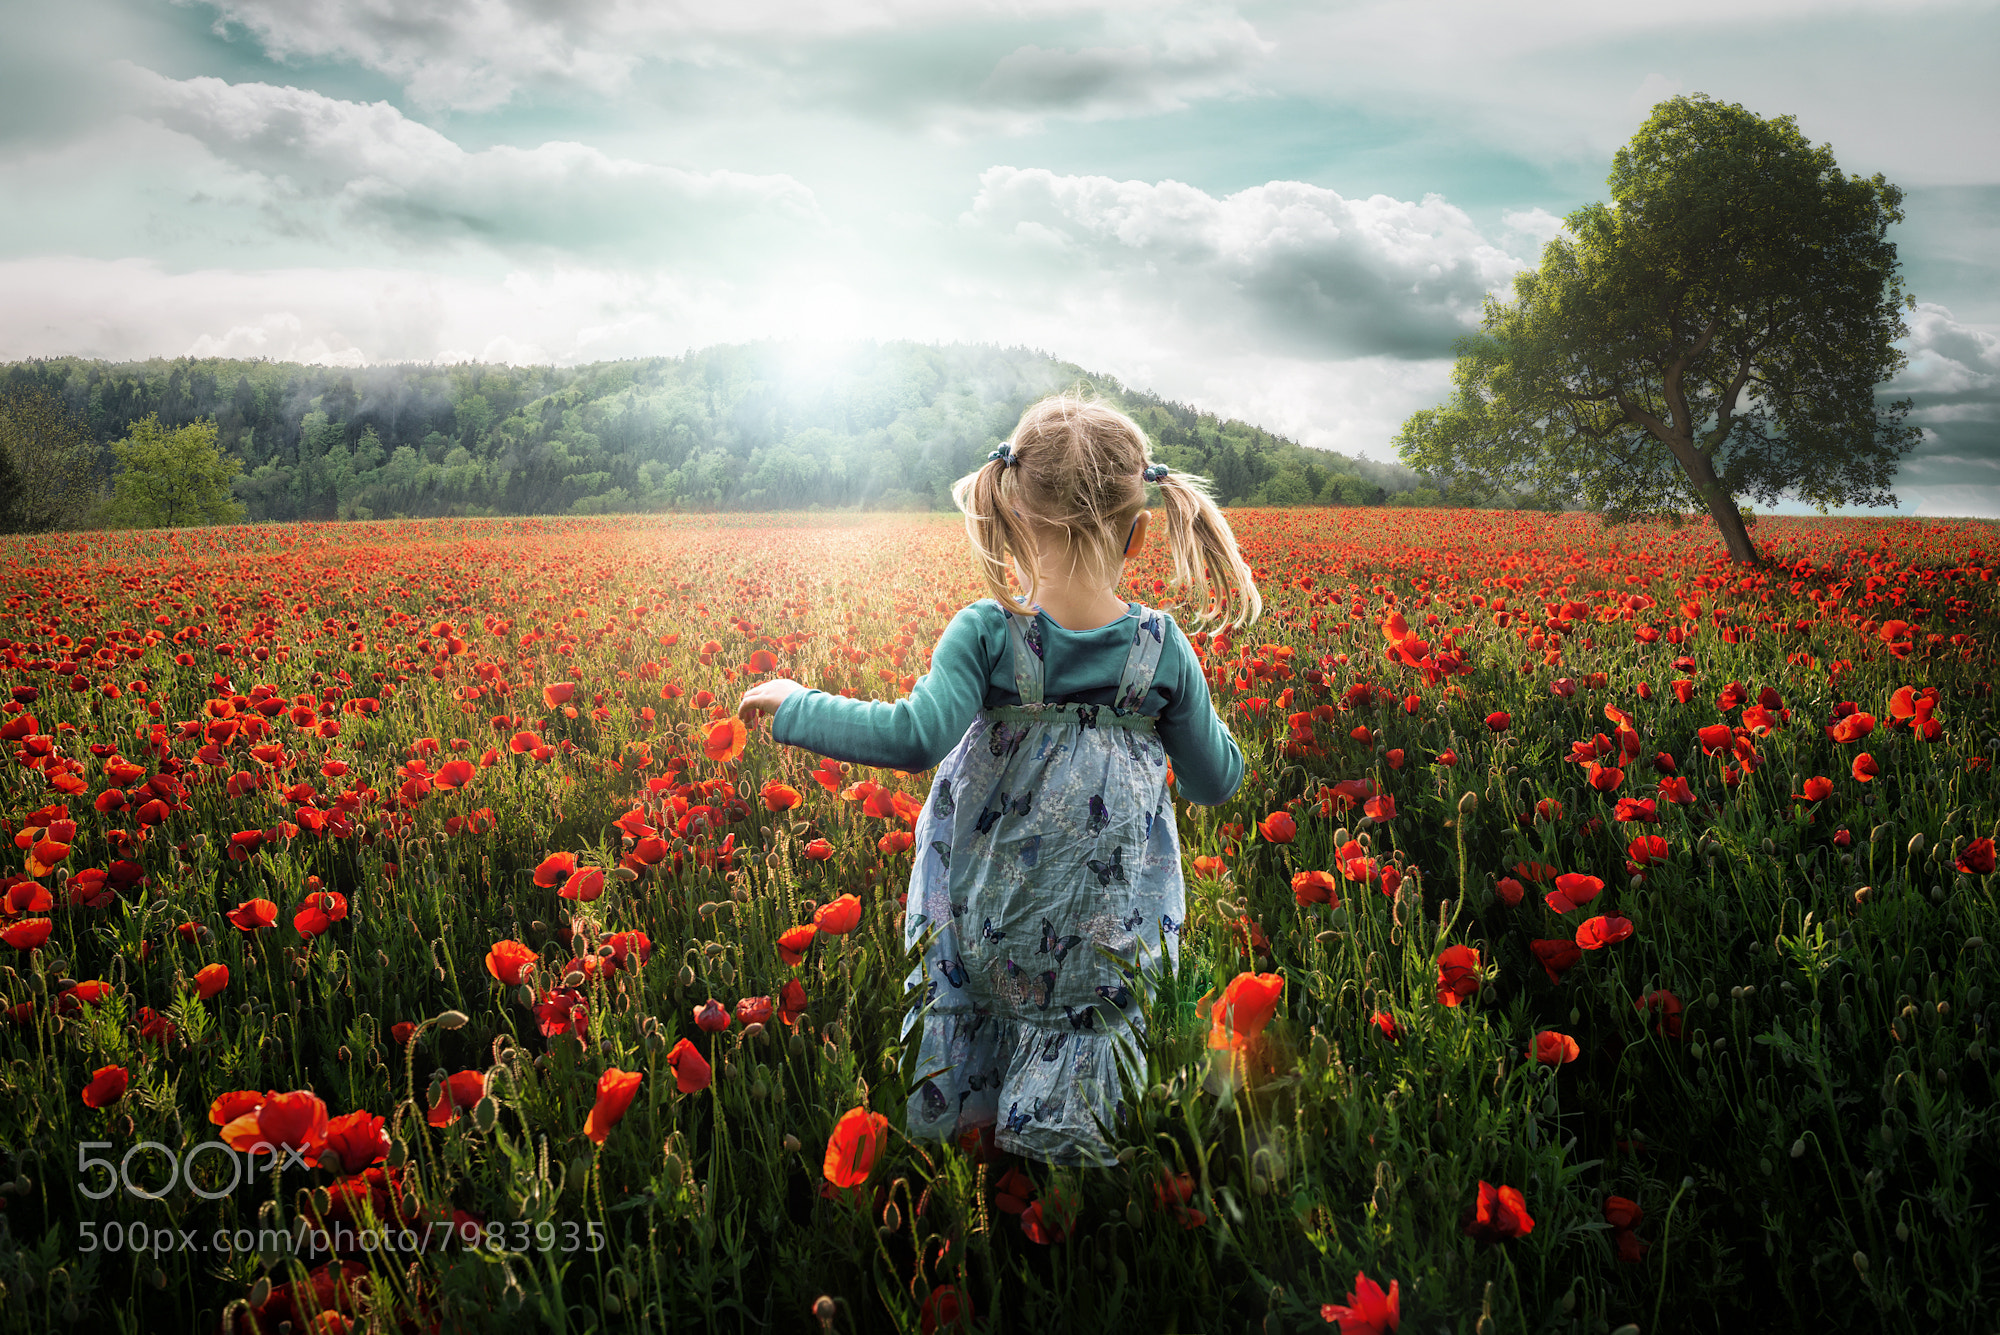 Photograph Into the Poppies by John Wilhelm is a photoholic on 500px